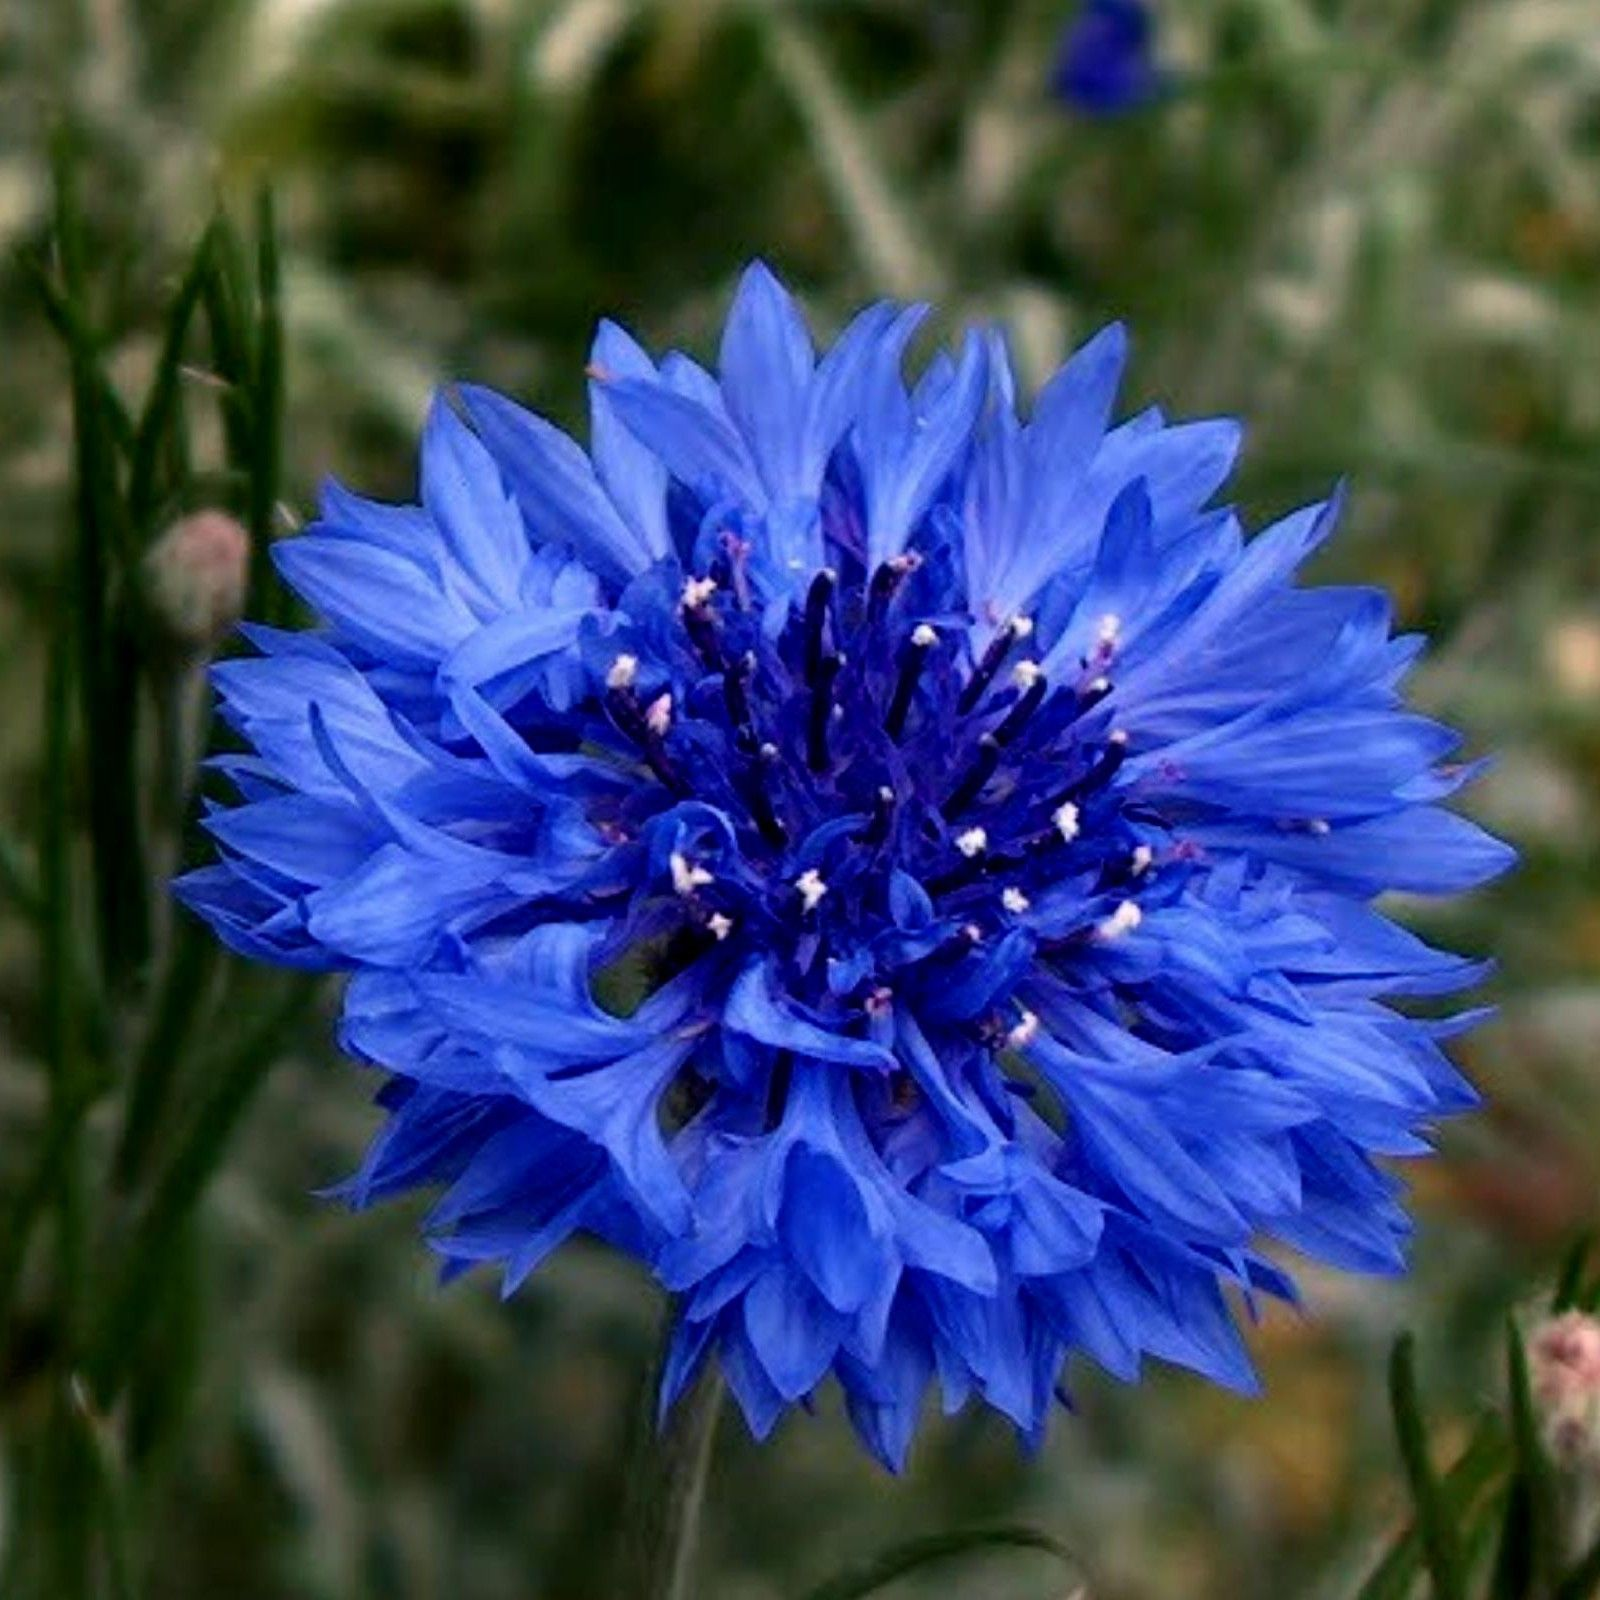 Edible Blue Bachelor Button Flower Seeds In 2020 Bachelor Button Flowers Bachelor Buttons Flower Seeds